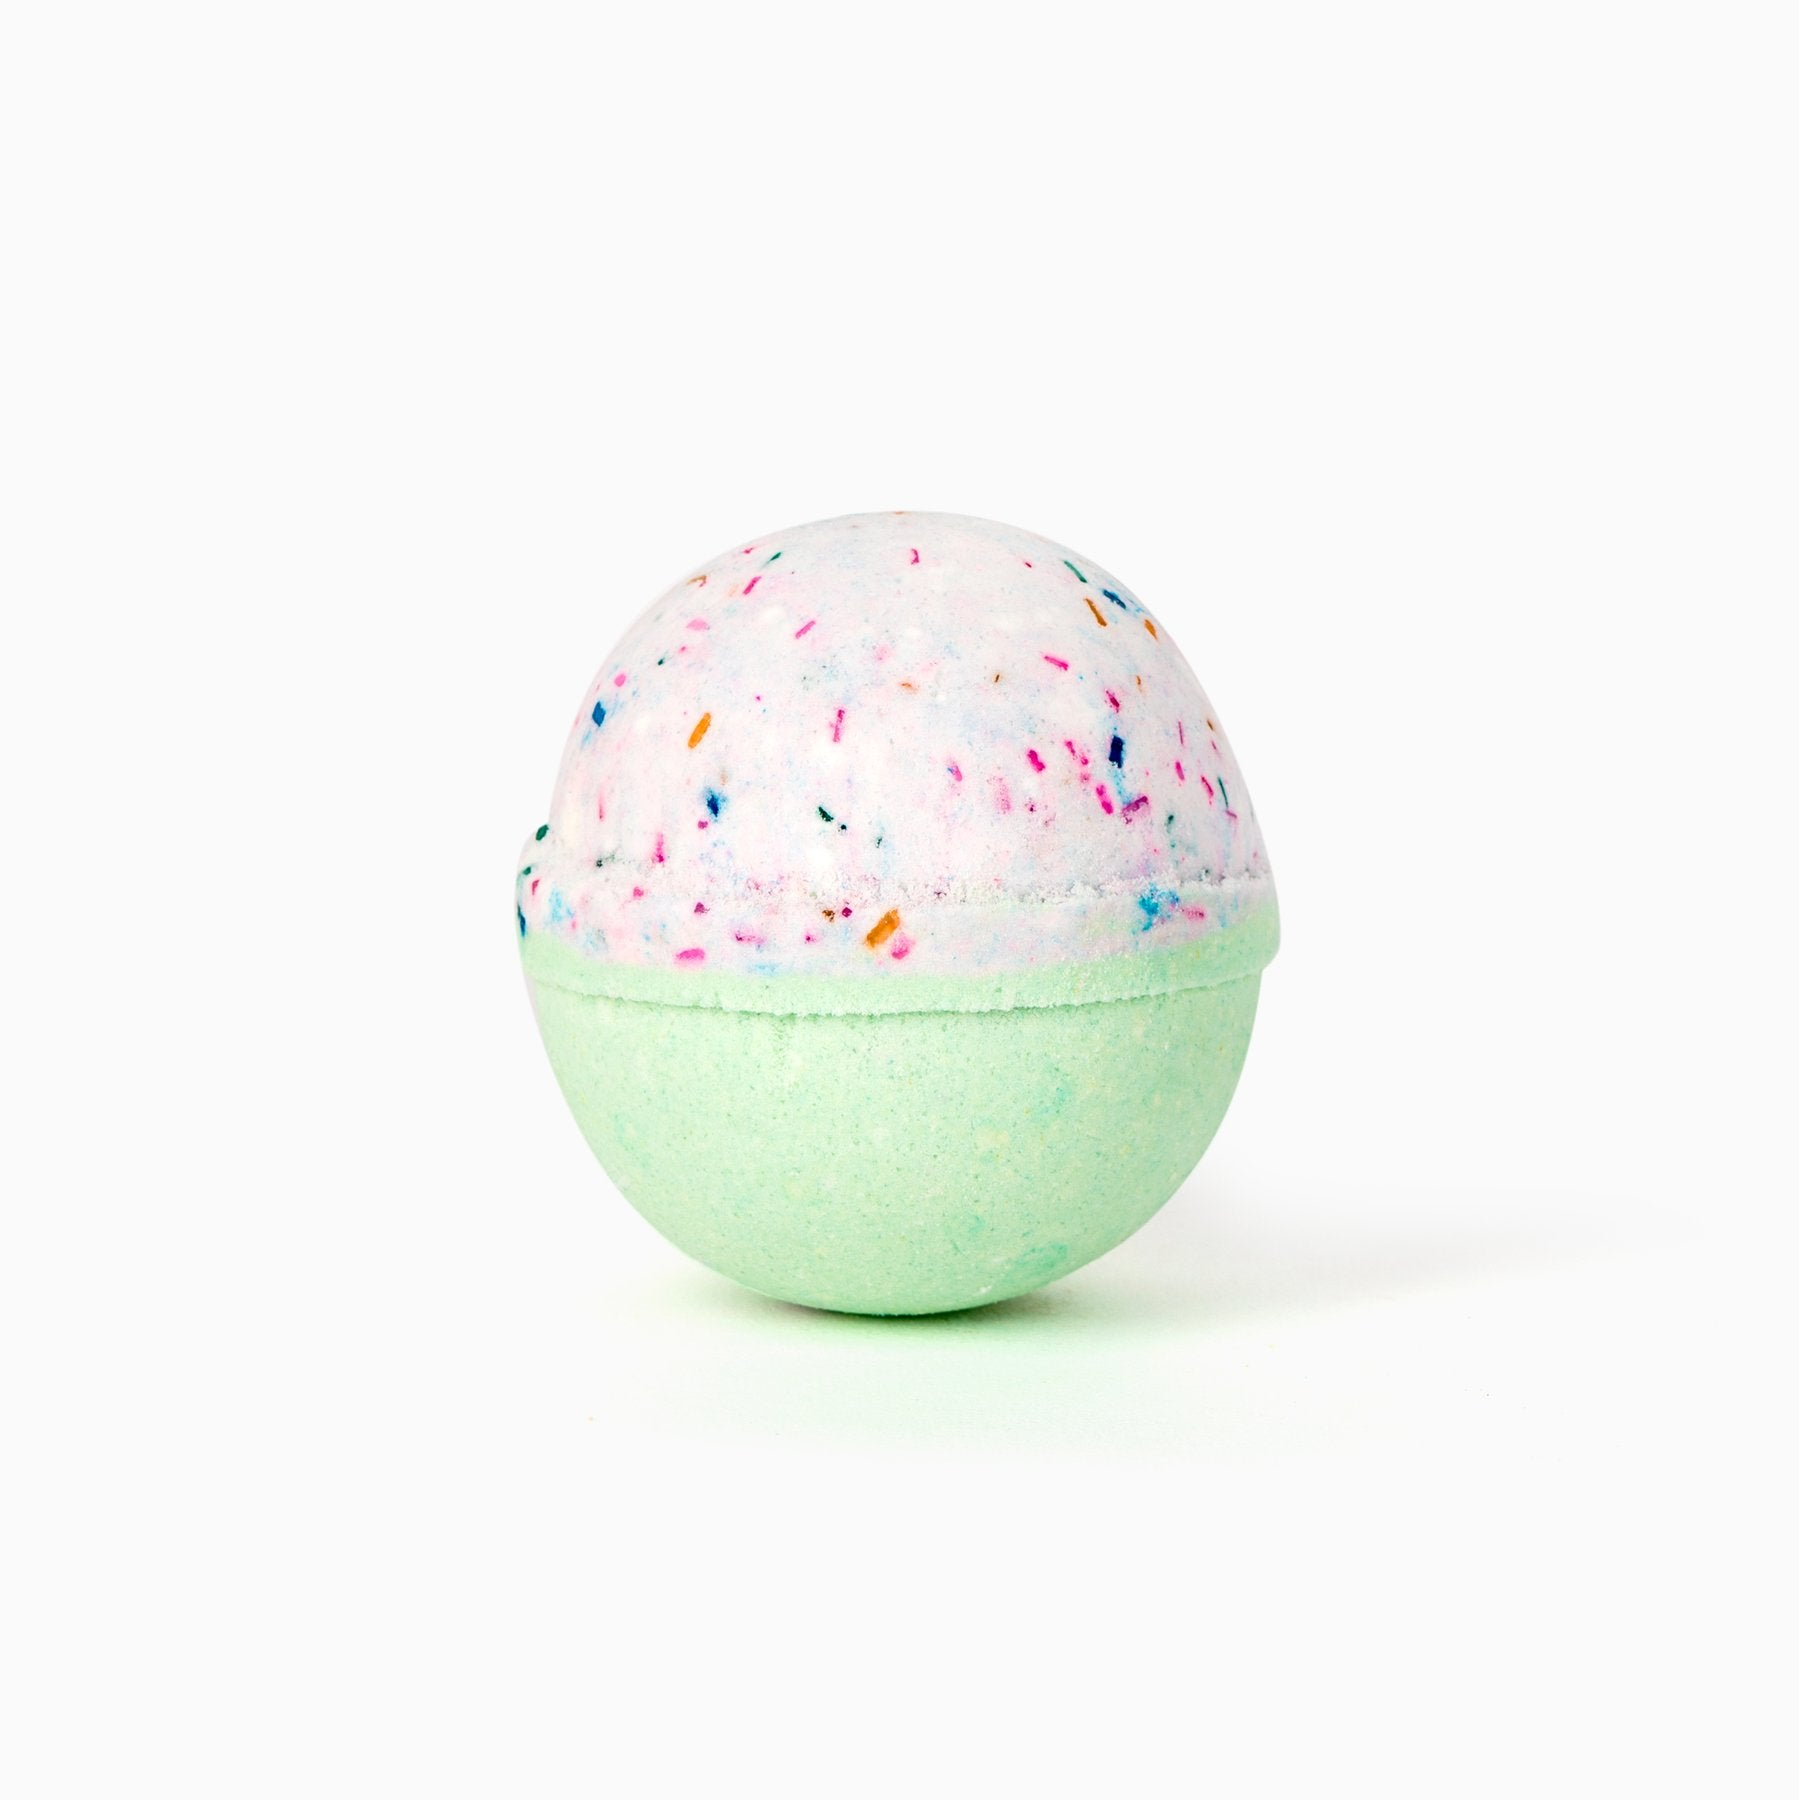 BIRTHDAY BOMBSHELL BATH BOMB